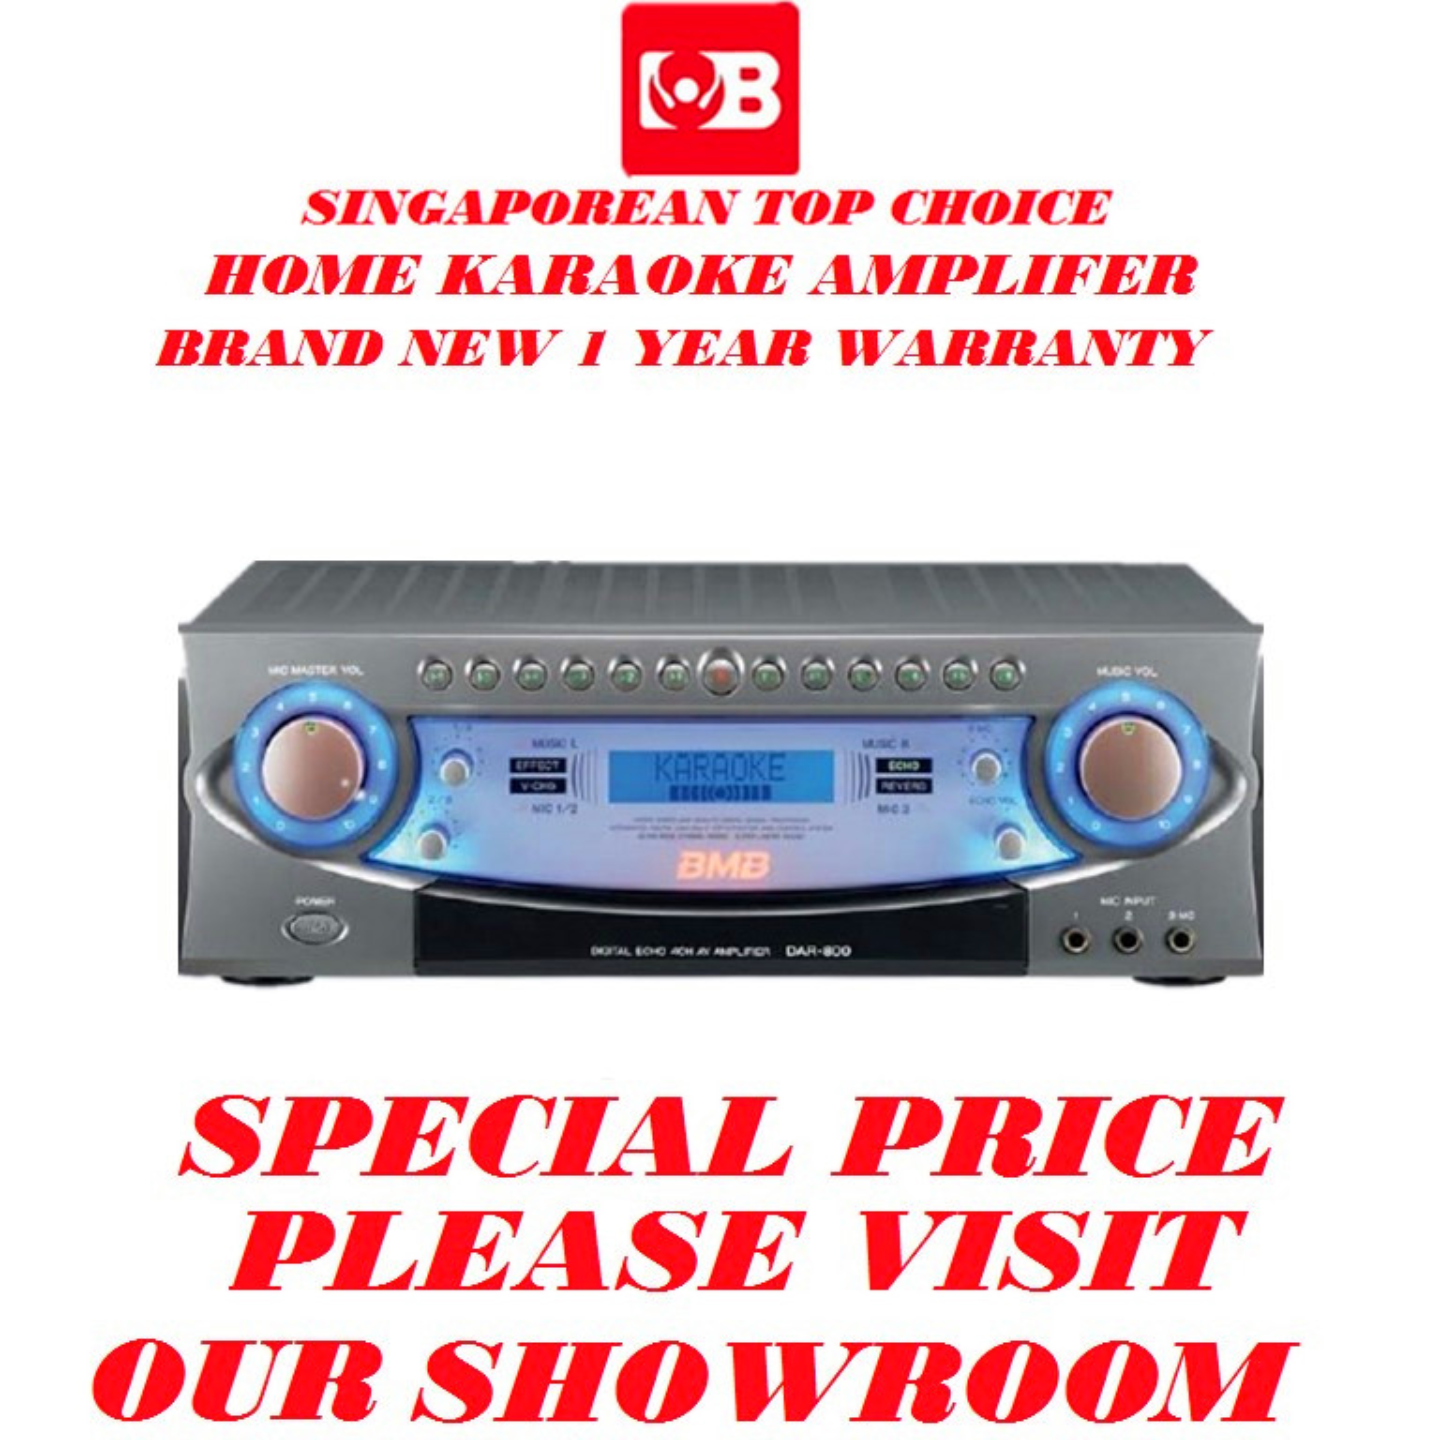 BMB Digital Karaoke Amplifer DAR-800